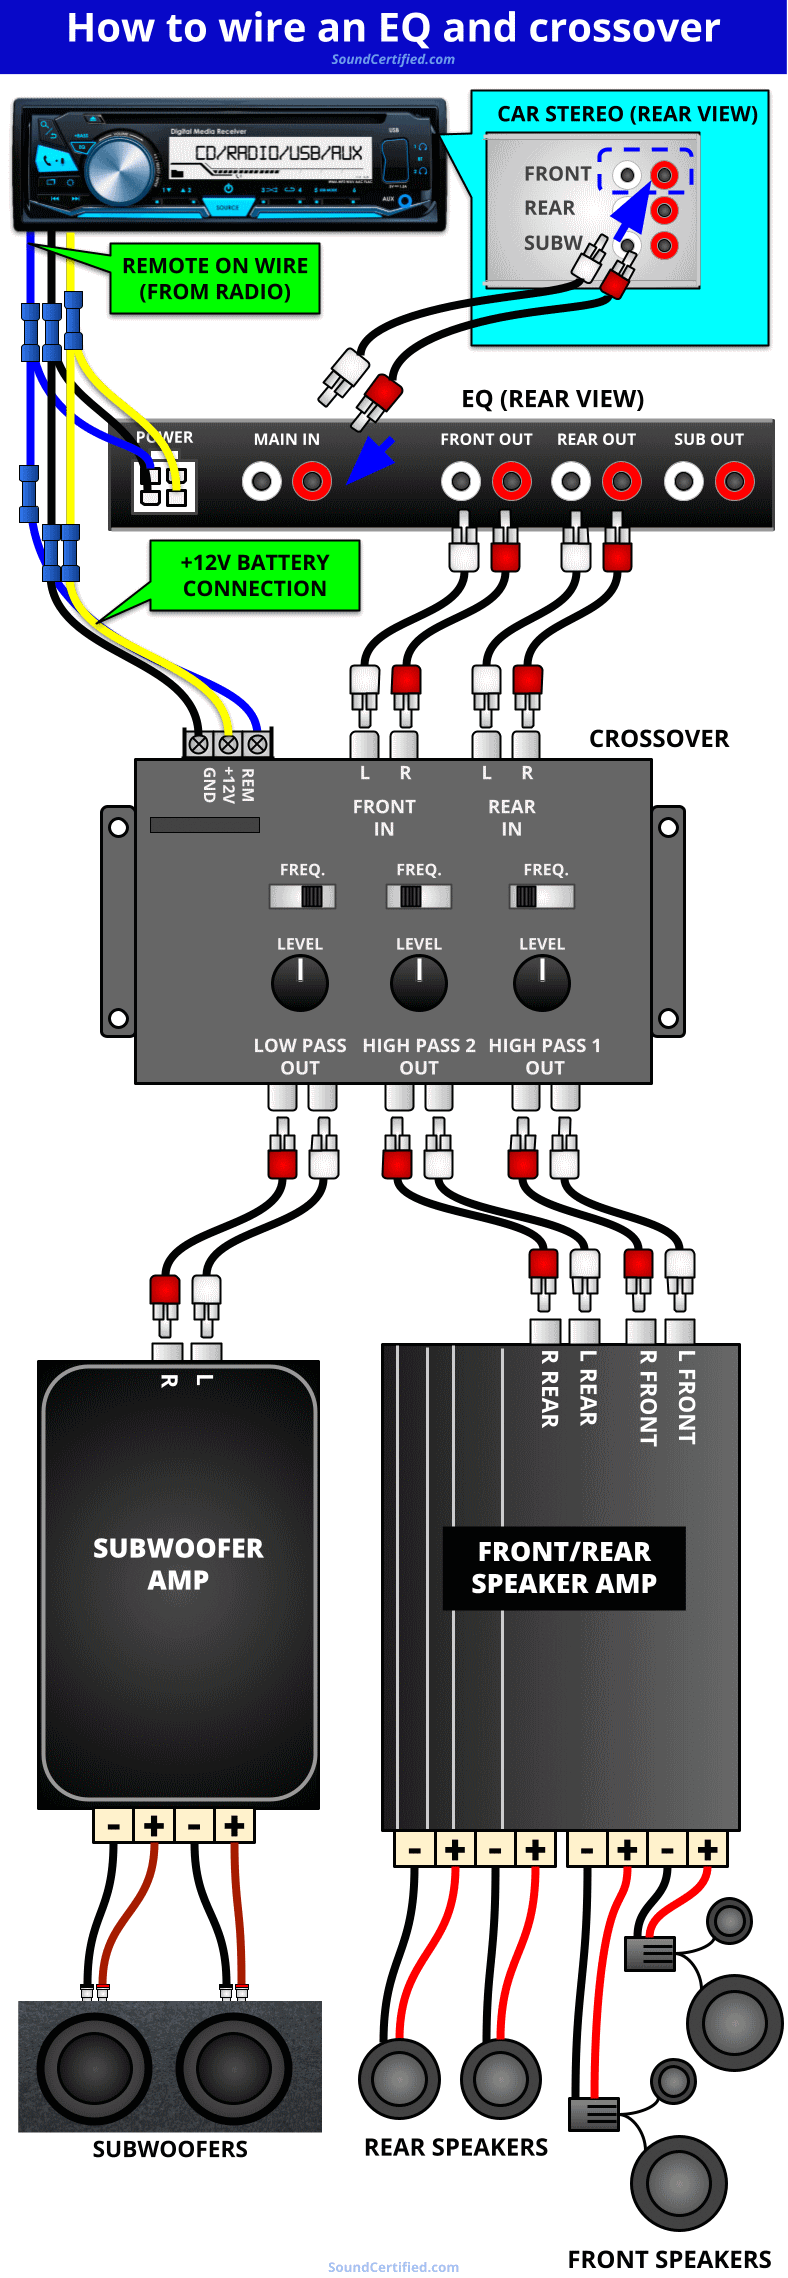 how to wire an eq and equalizer for car audio diagram